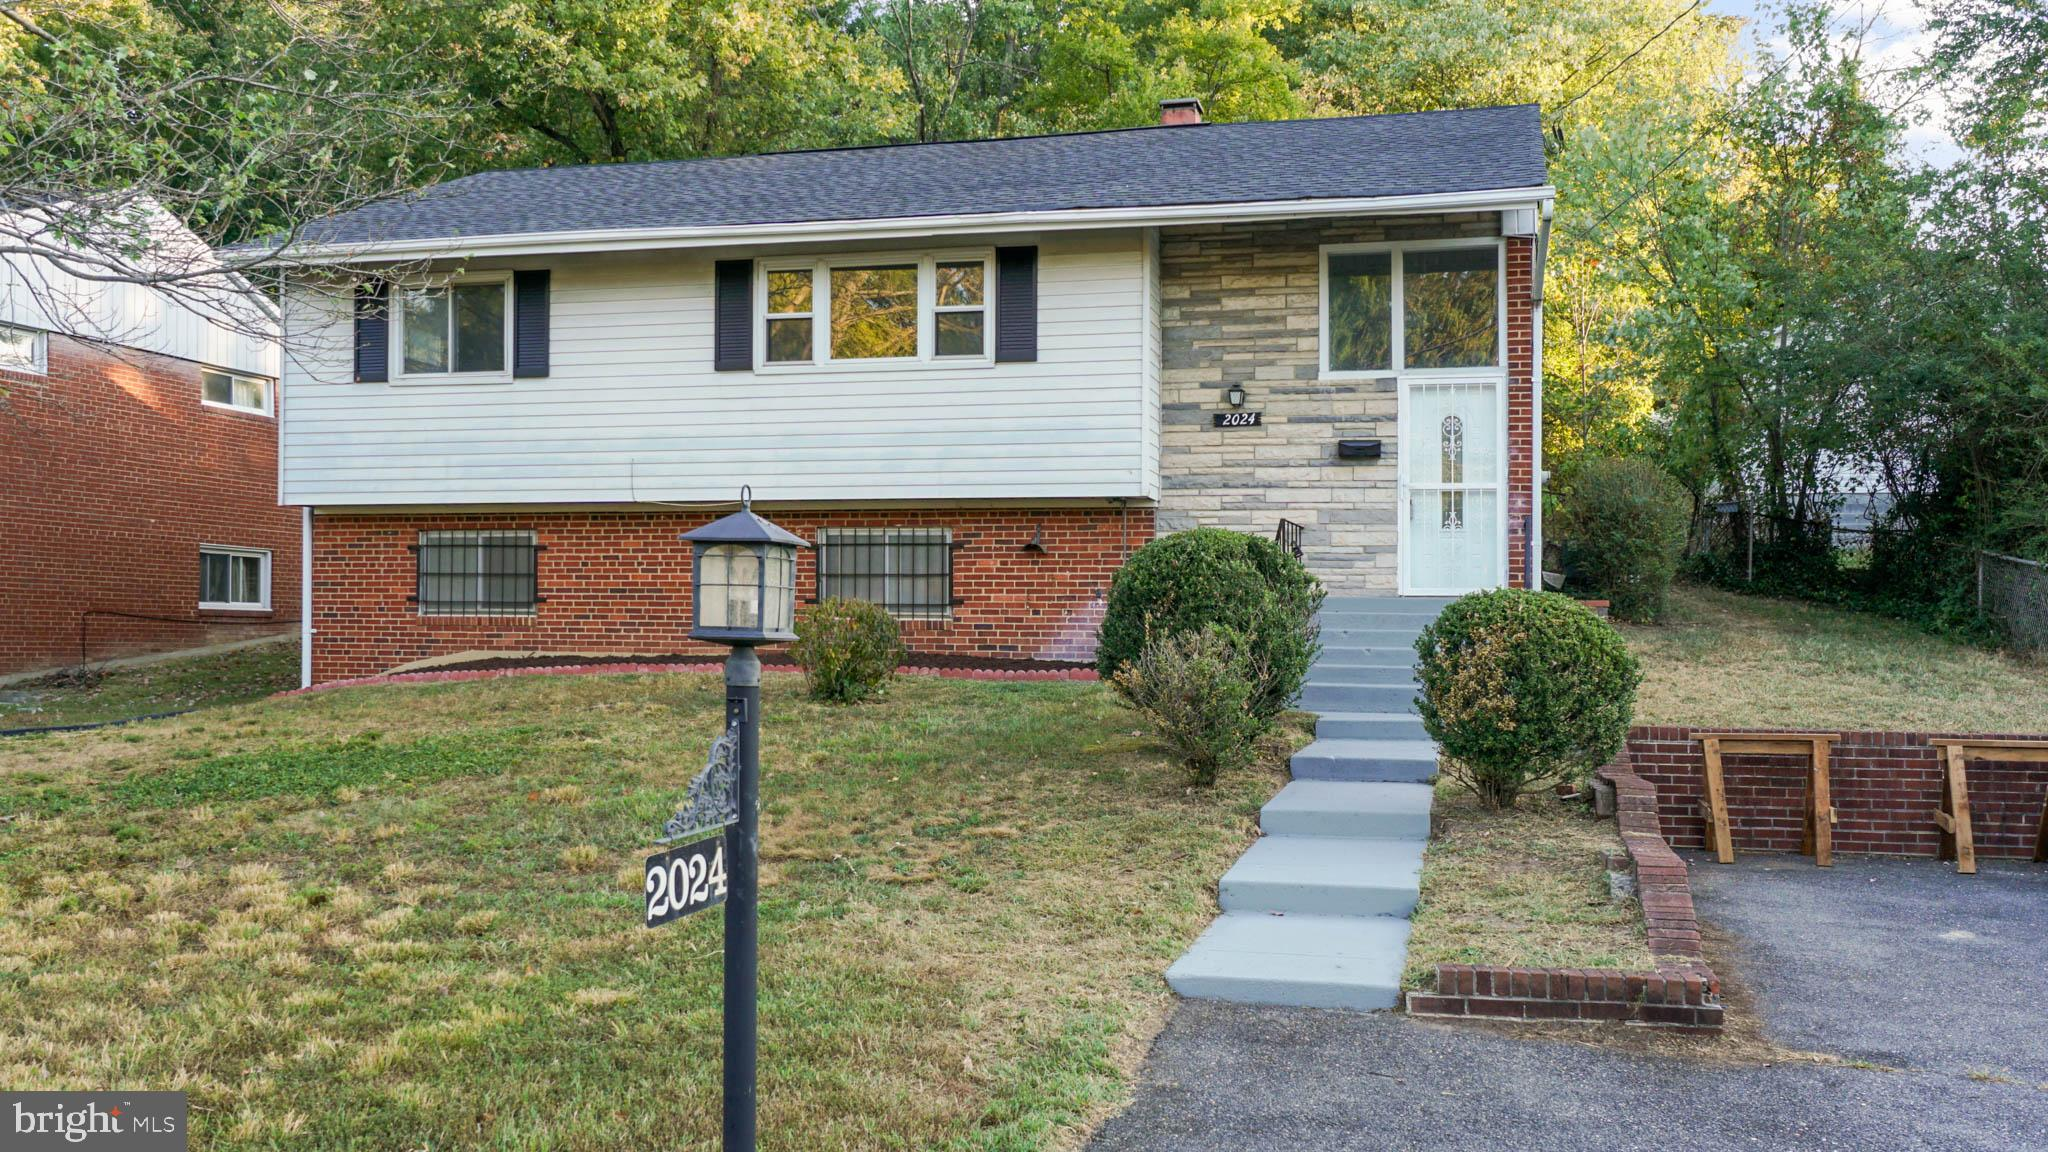 2024 MARBURY DRIVE, DISTRICT HEIGHTS, MD 20747